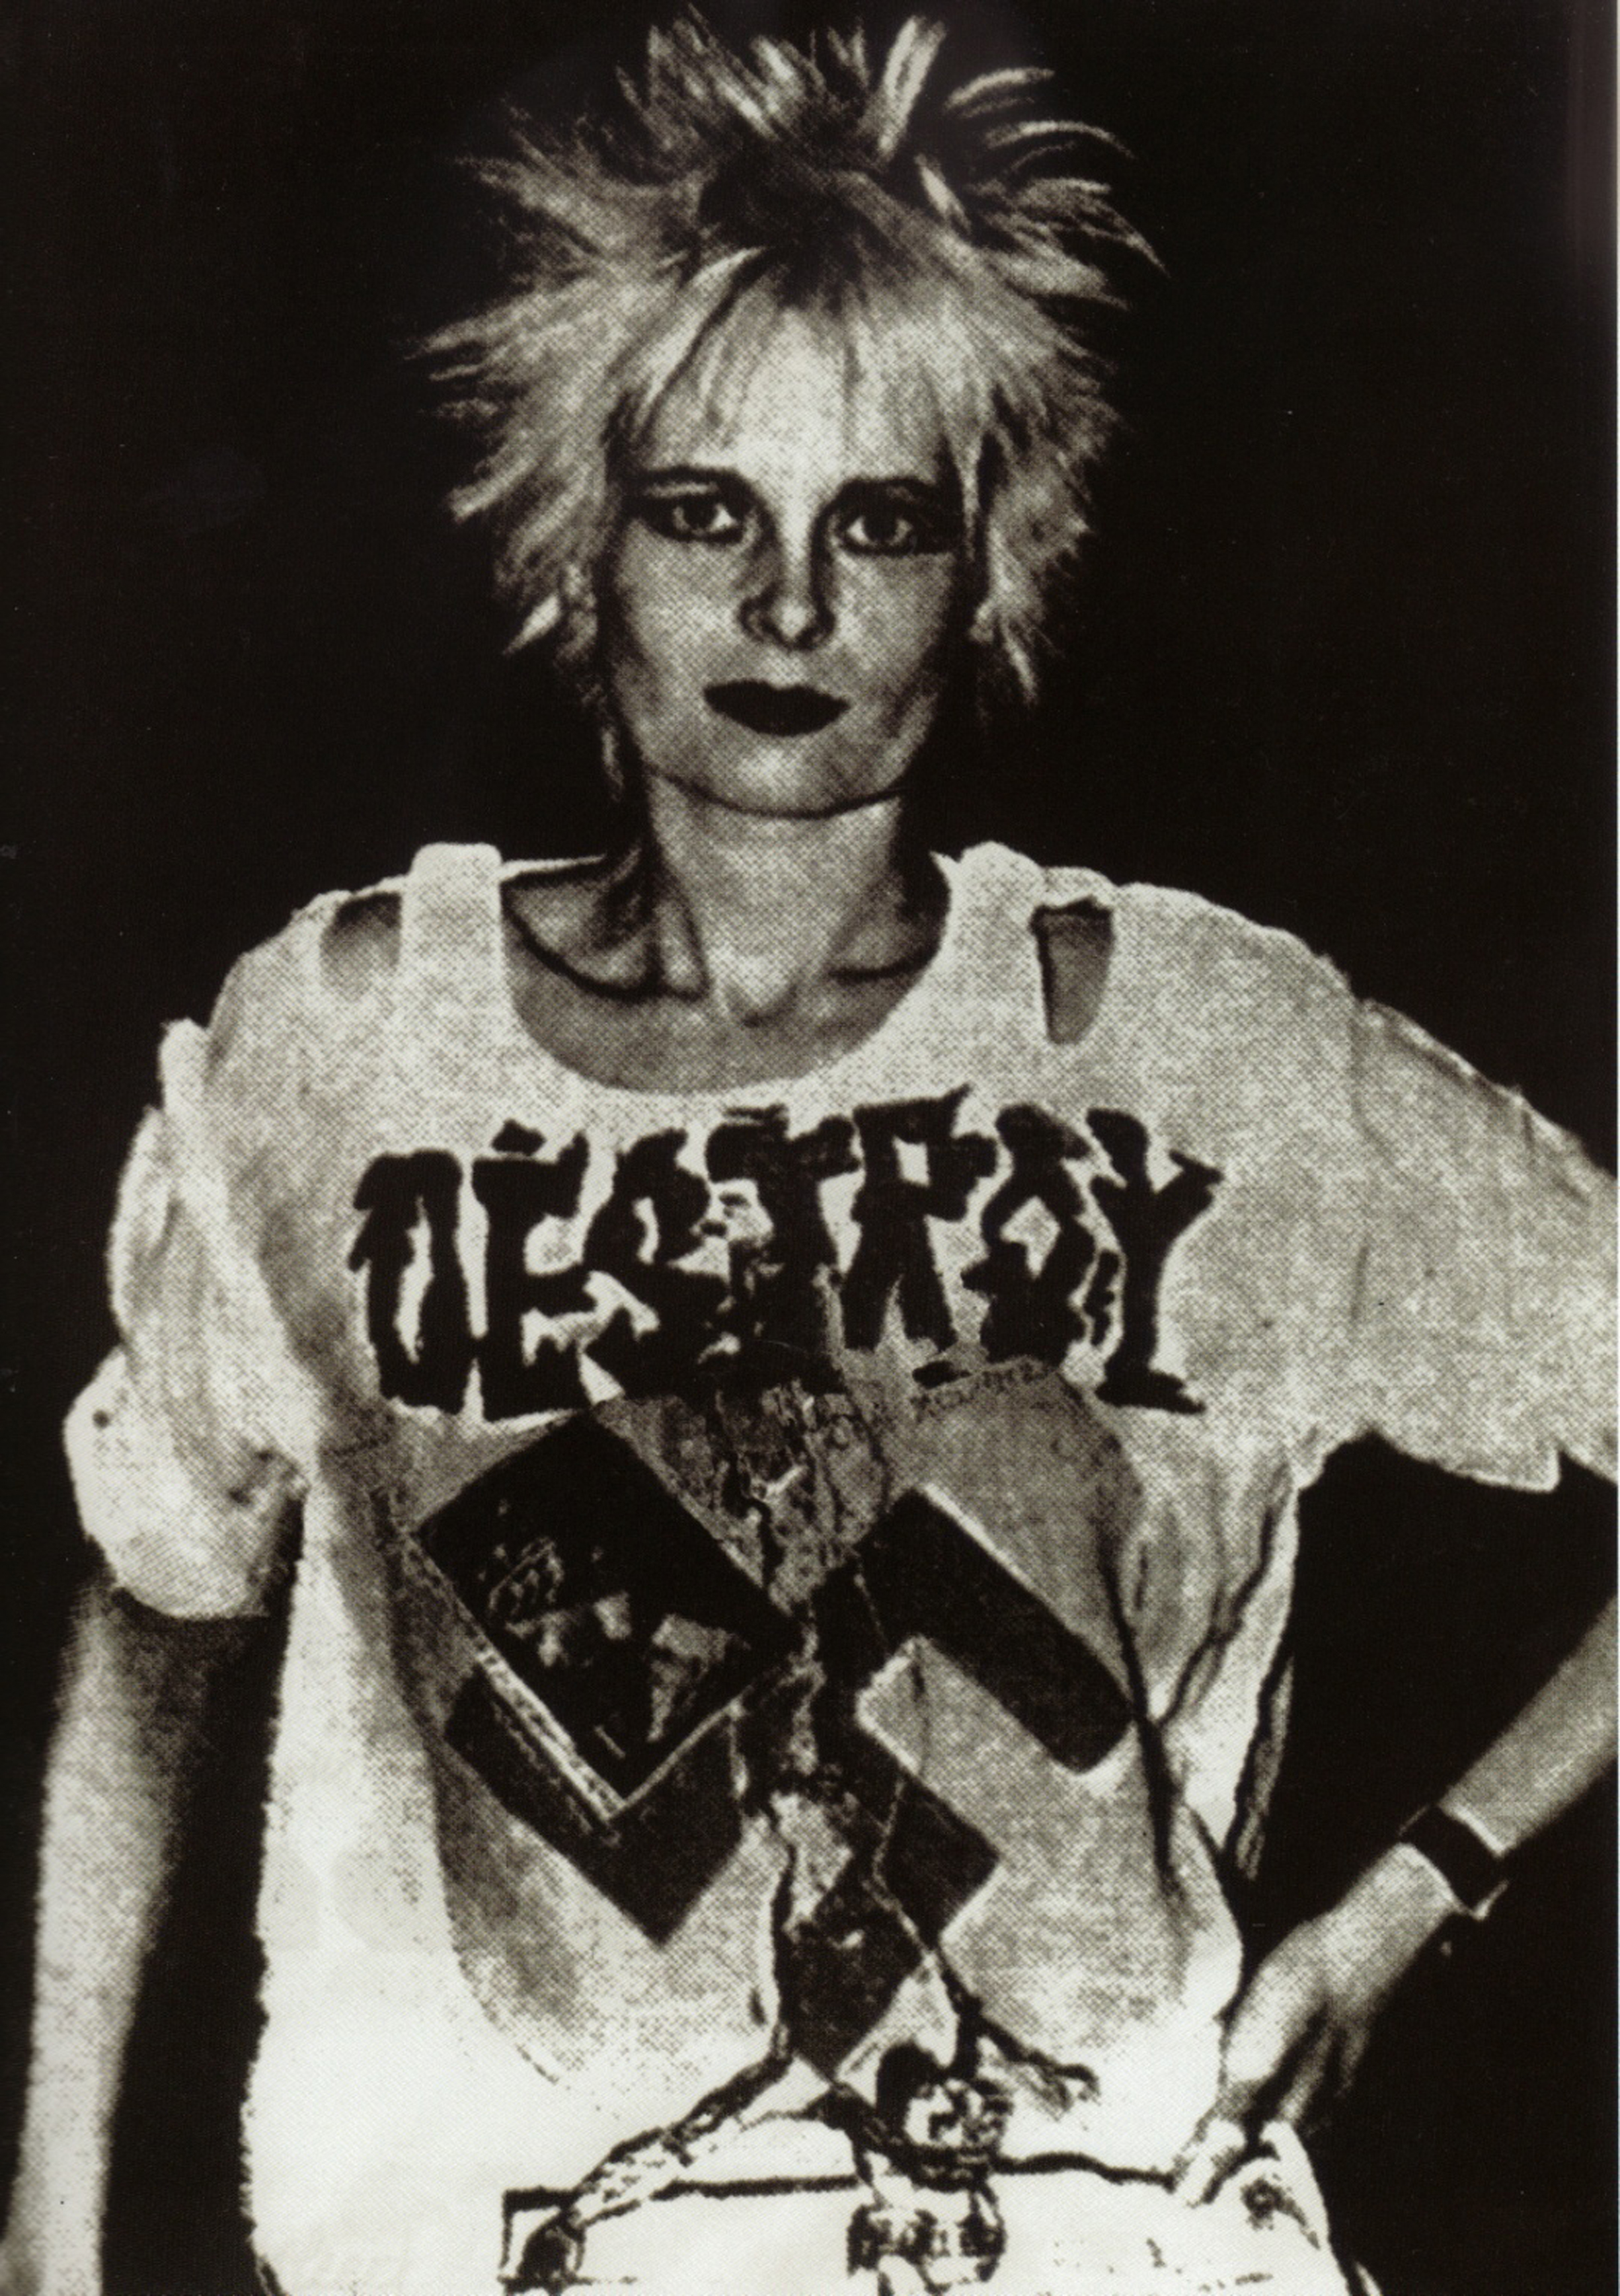 Punk fashion in the 70s 91